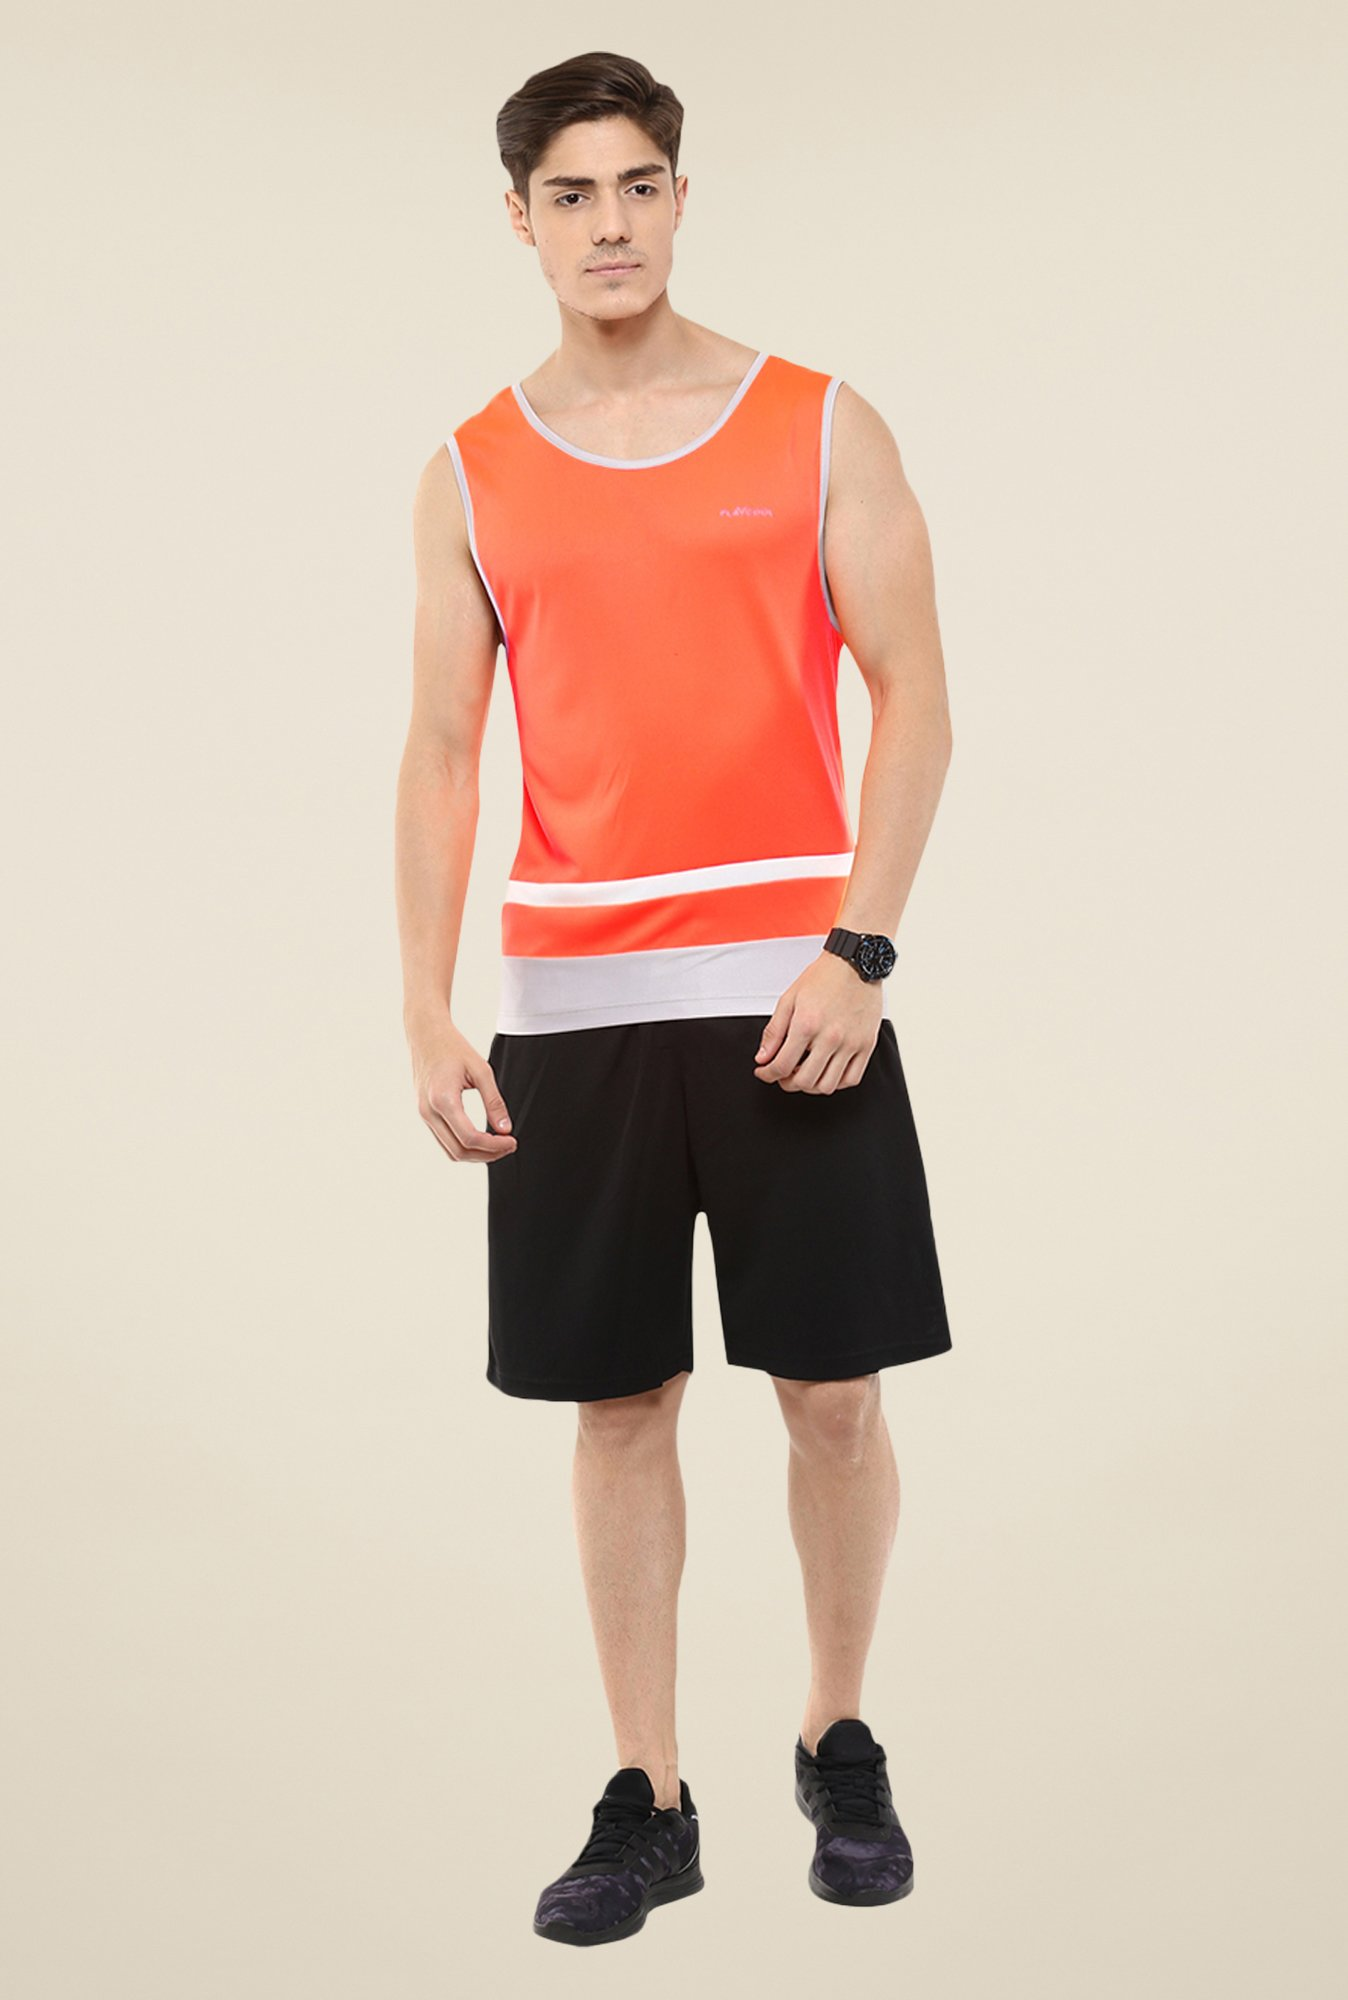 Yepme Orange Grant Muscle Solid T-shirt